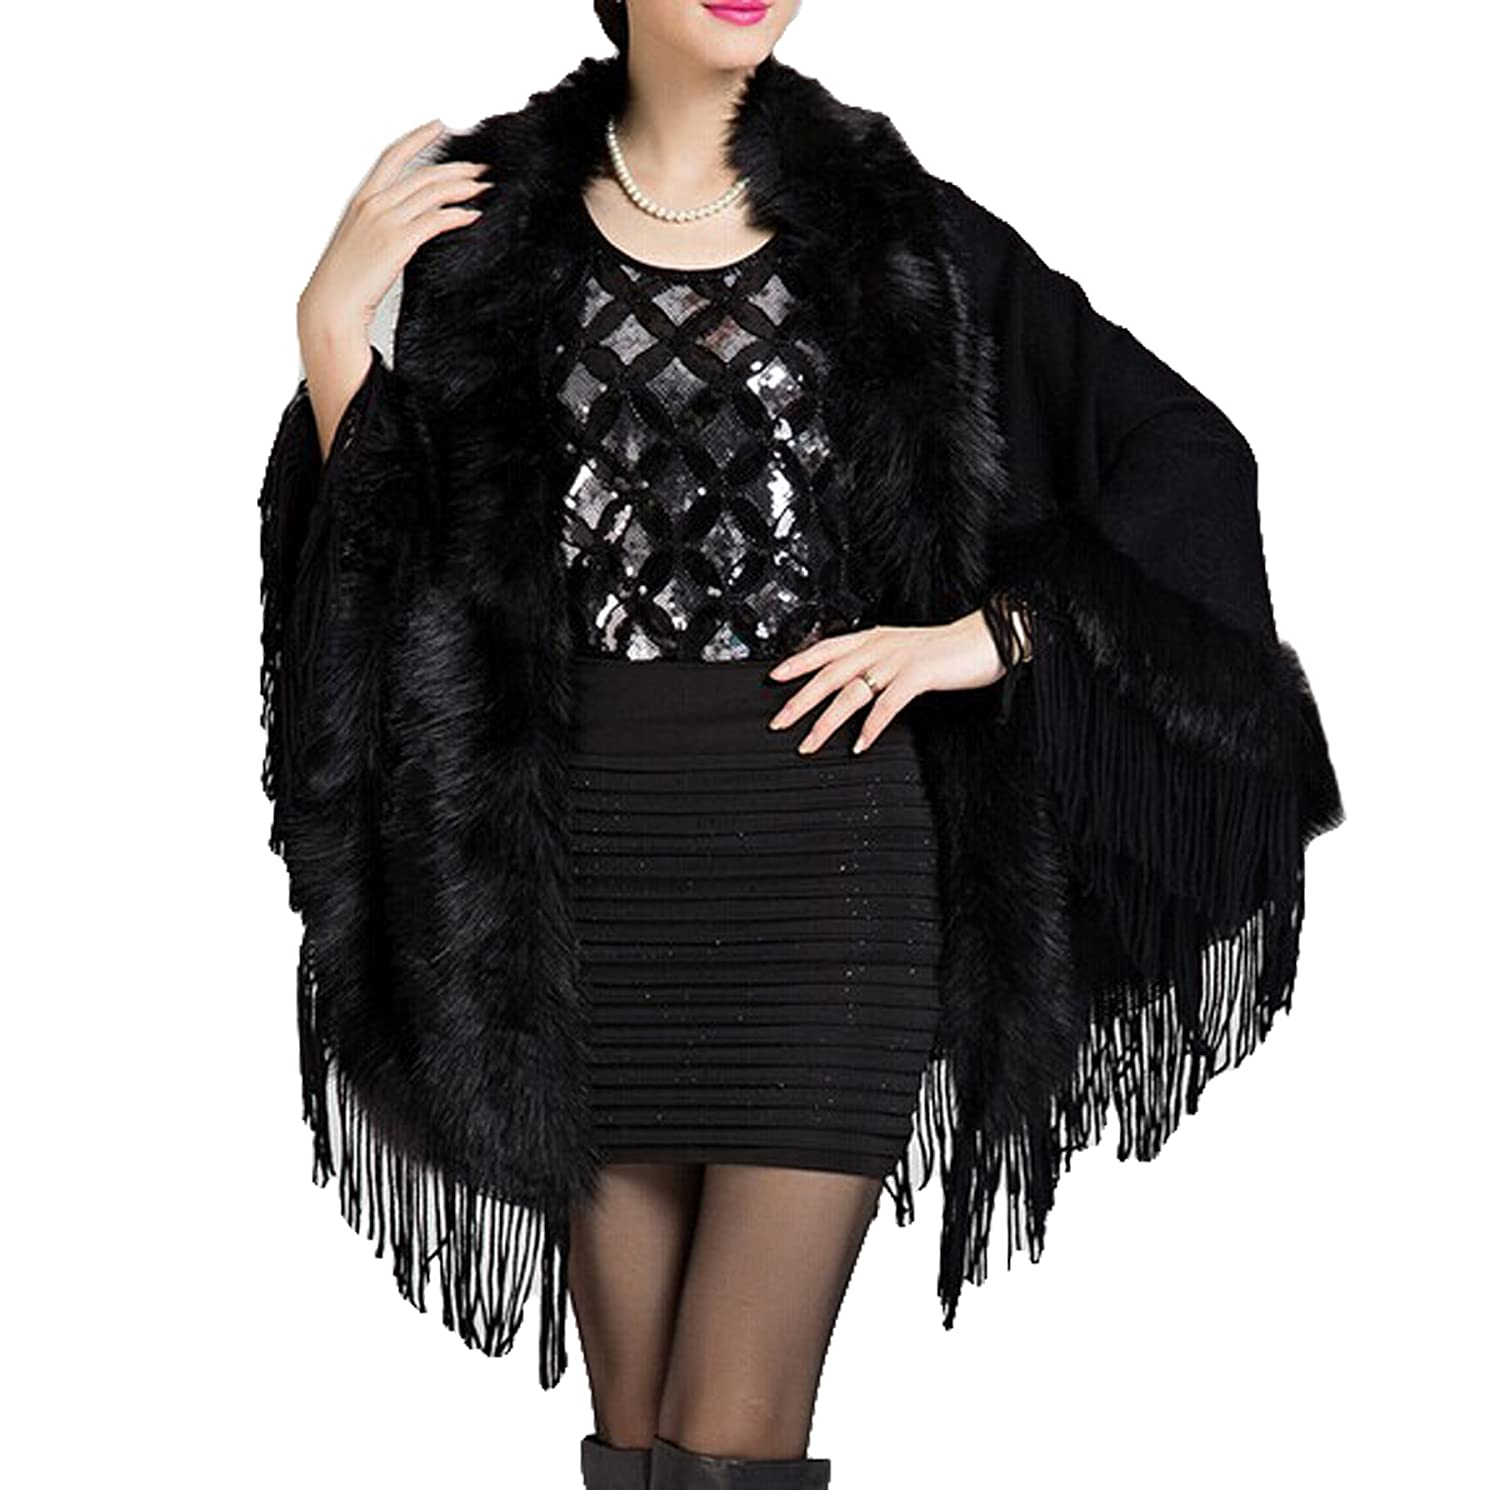 damen faux kaschmir schal umhang wasserabweisend fringed cape cardigan online bestellen. Black Bedroom Furniture Sets. Home Design Ideas